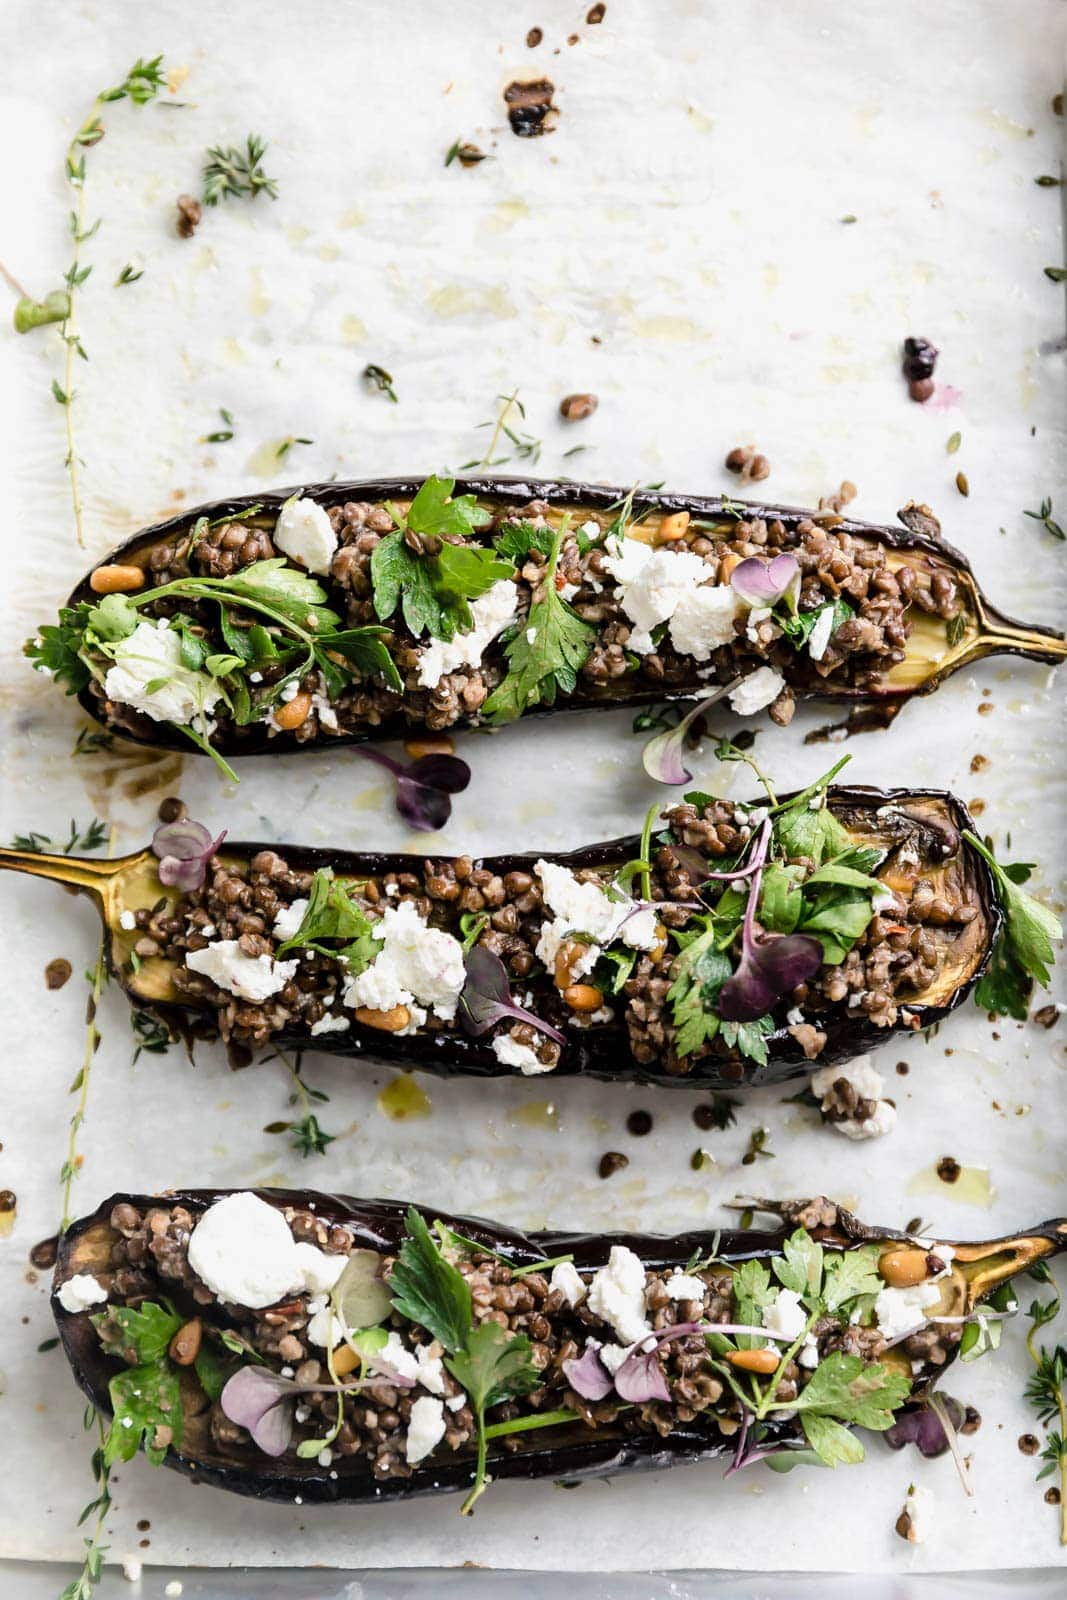 Roasted Baby Eggplant with Goat Cheese and Lentils is a simple, hearty, and satisfying dish you'll want to make every weeknight this winter!